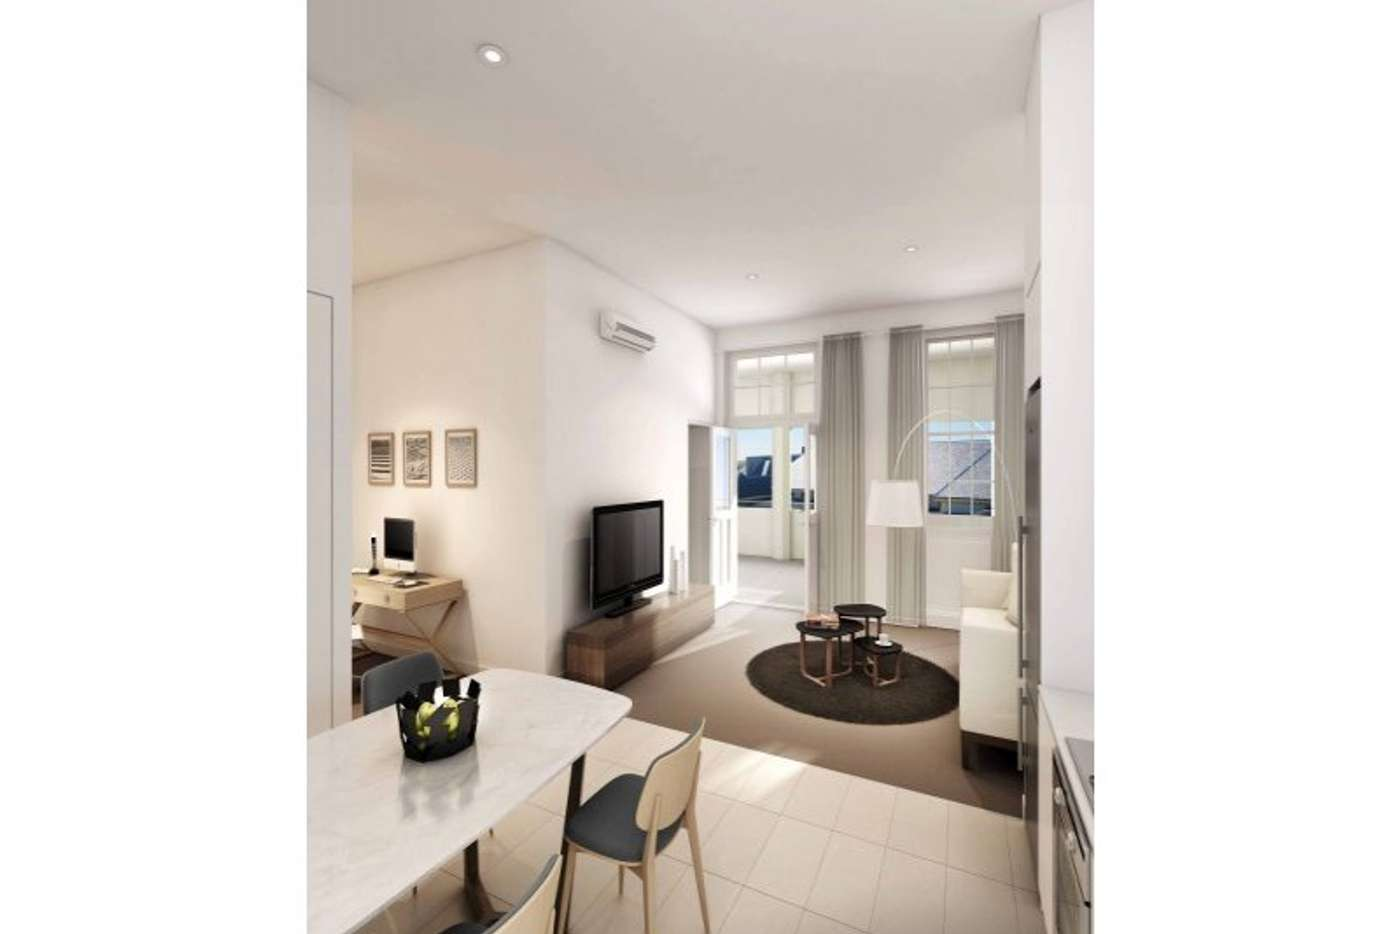 Sixth view of Homely apartment listing, 2/1 Flemming Street, Little Bay NSW 2036